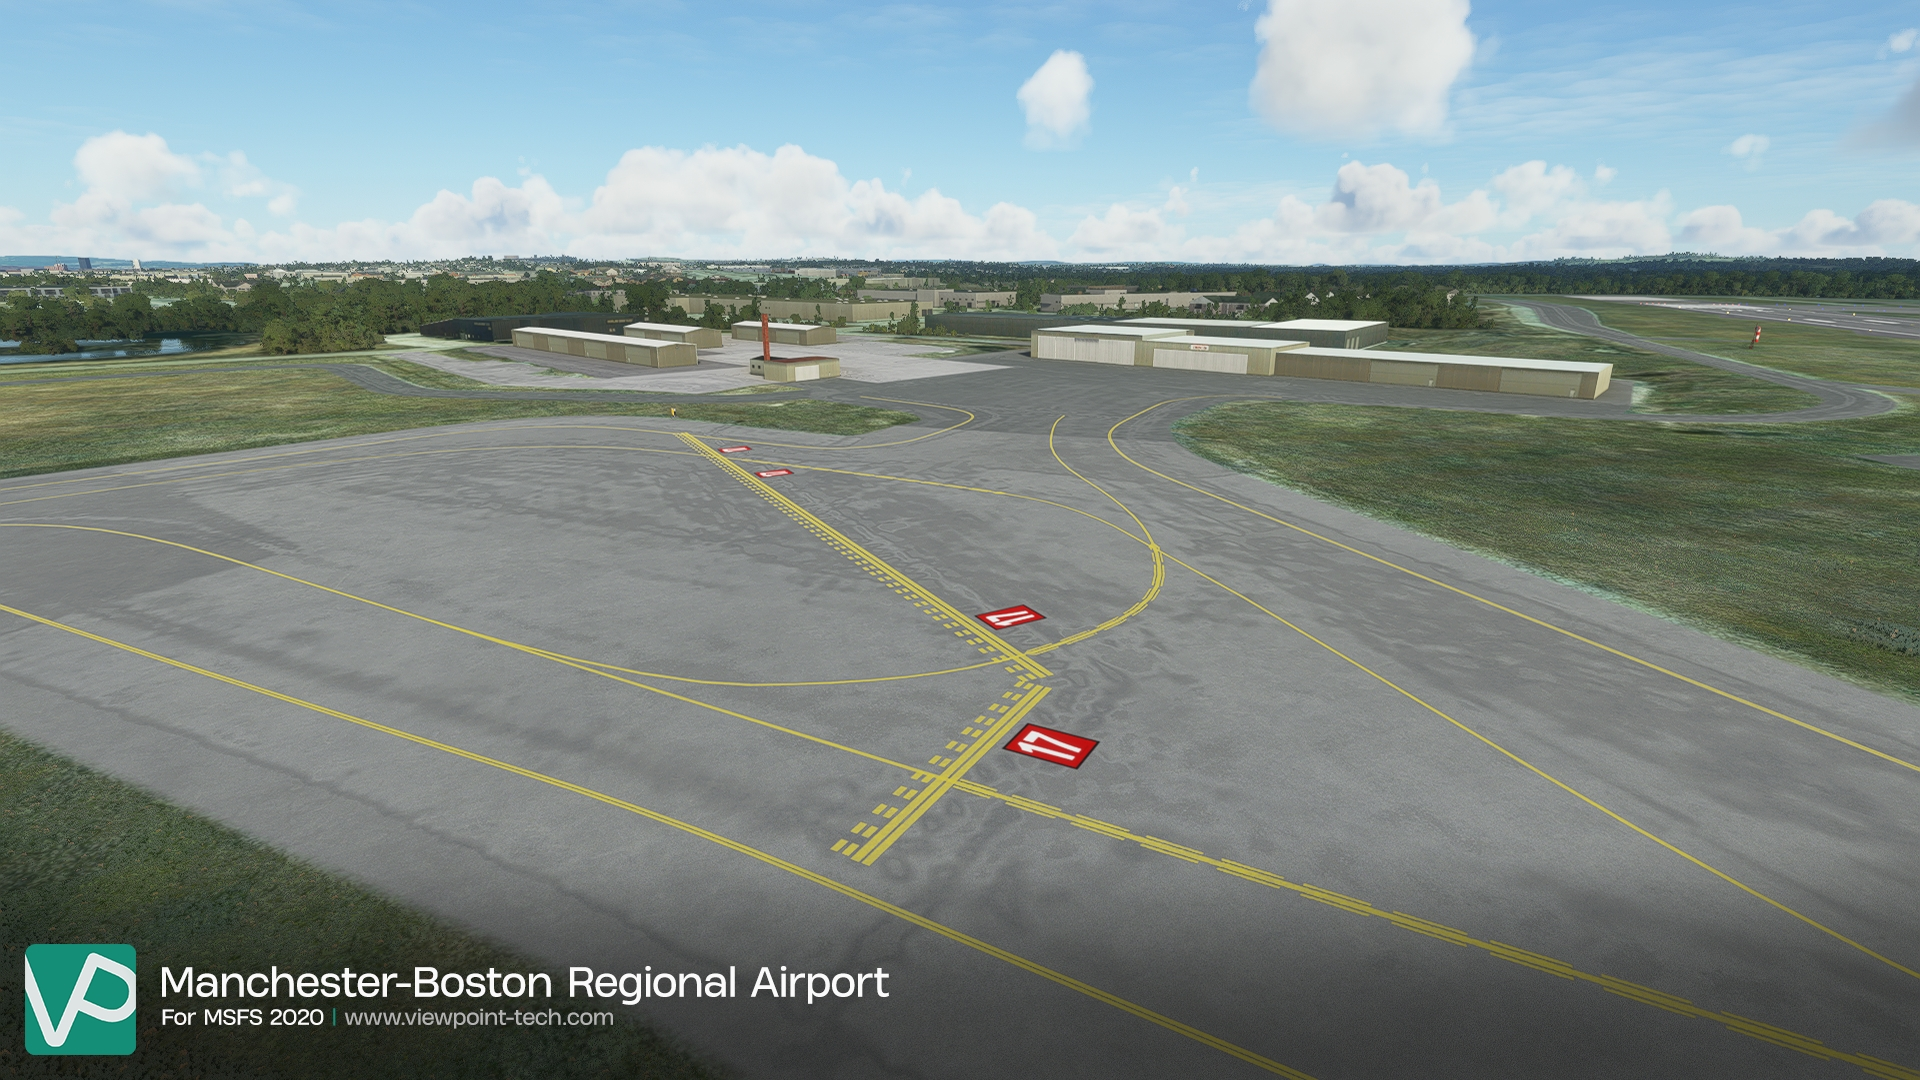 VIEWPOINT TECHNOLOGIES - MANCHESTER-BOSTON REGIONAL AIRPORT KMHT V2 MSFS